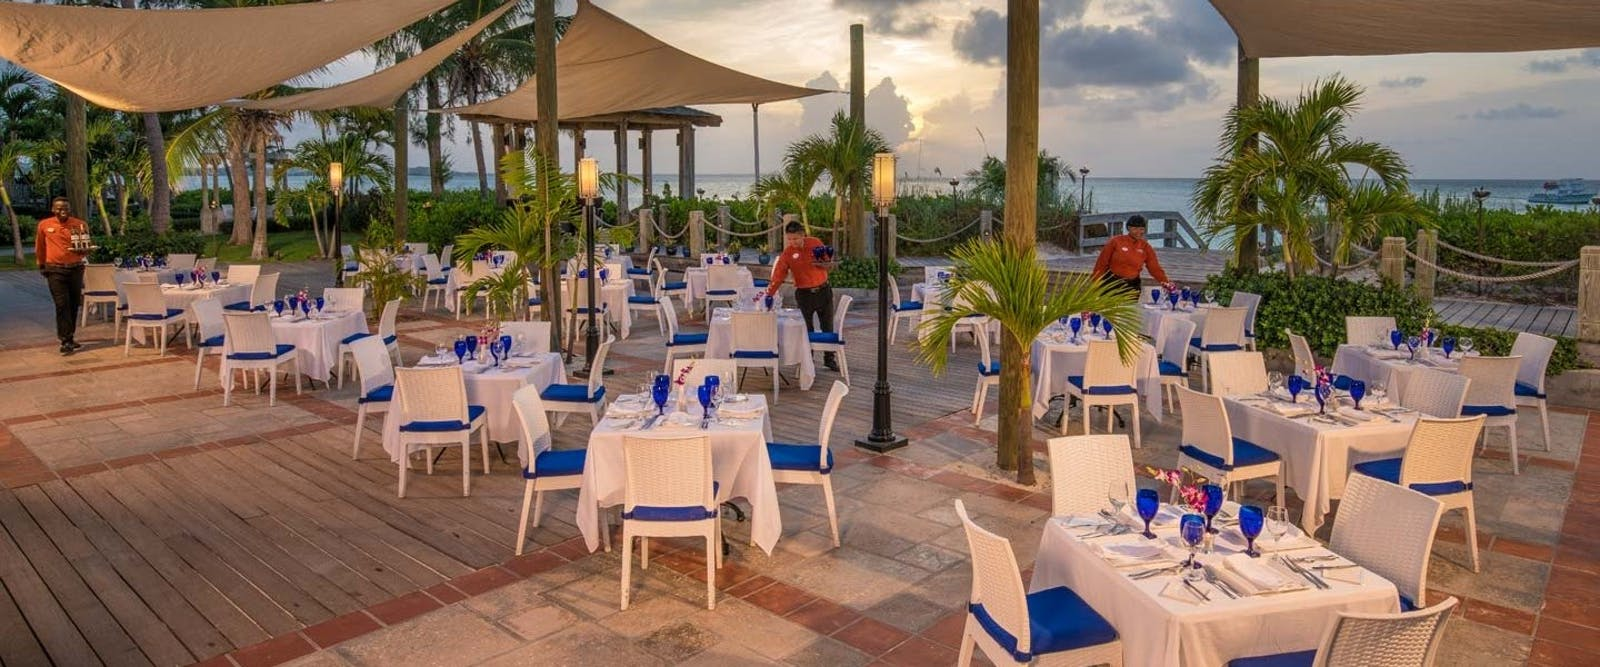 Bayside Restaurant at Beaches Turks & Caicos Resort Villages & Spa